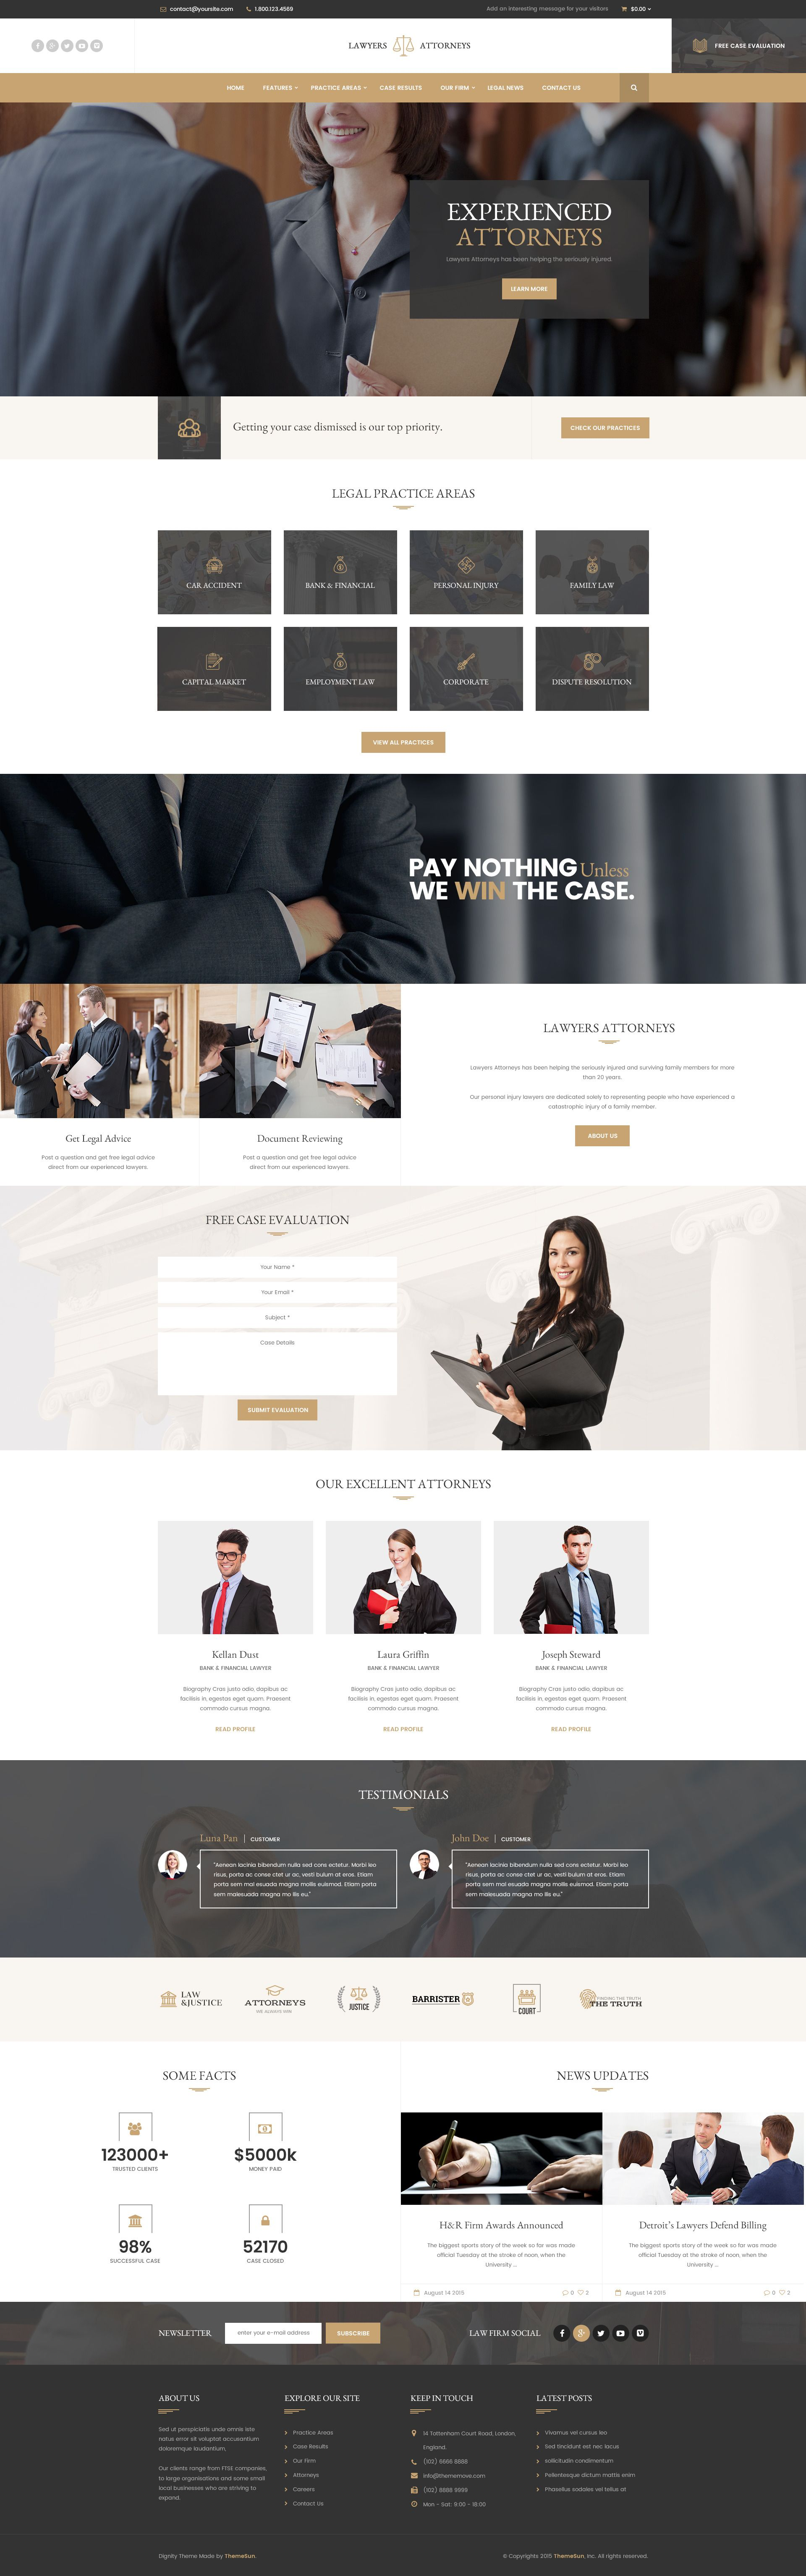 Lawyer Attorneys - Modern Law Firm PSD Template   Psd templates and ...